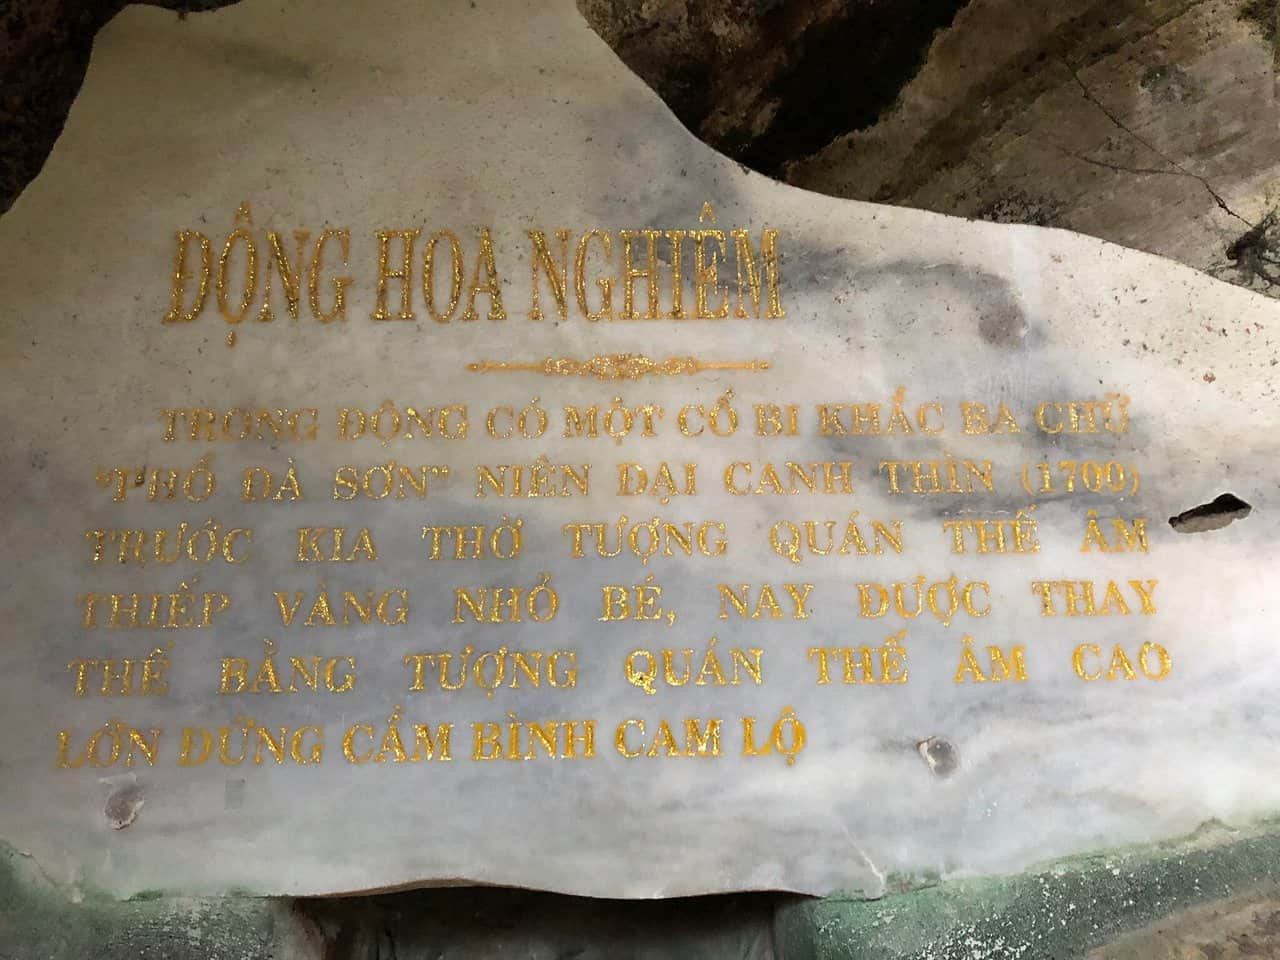 What to see in Hoa Nghiem cave